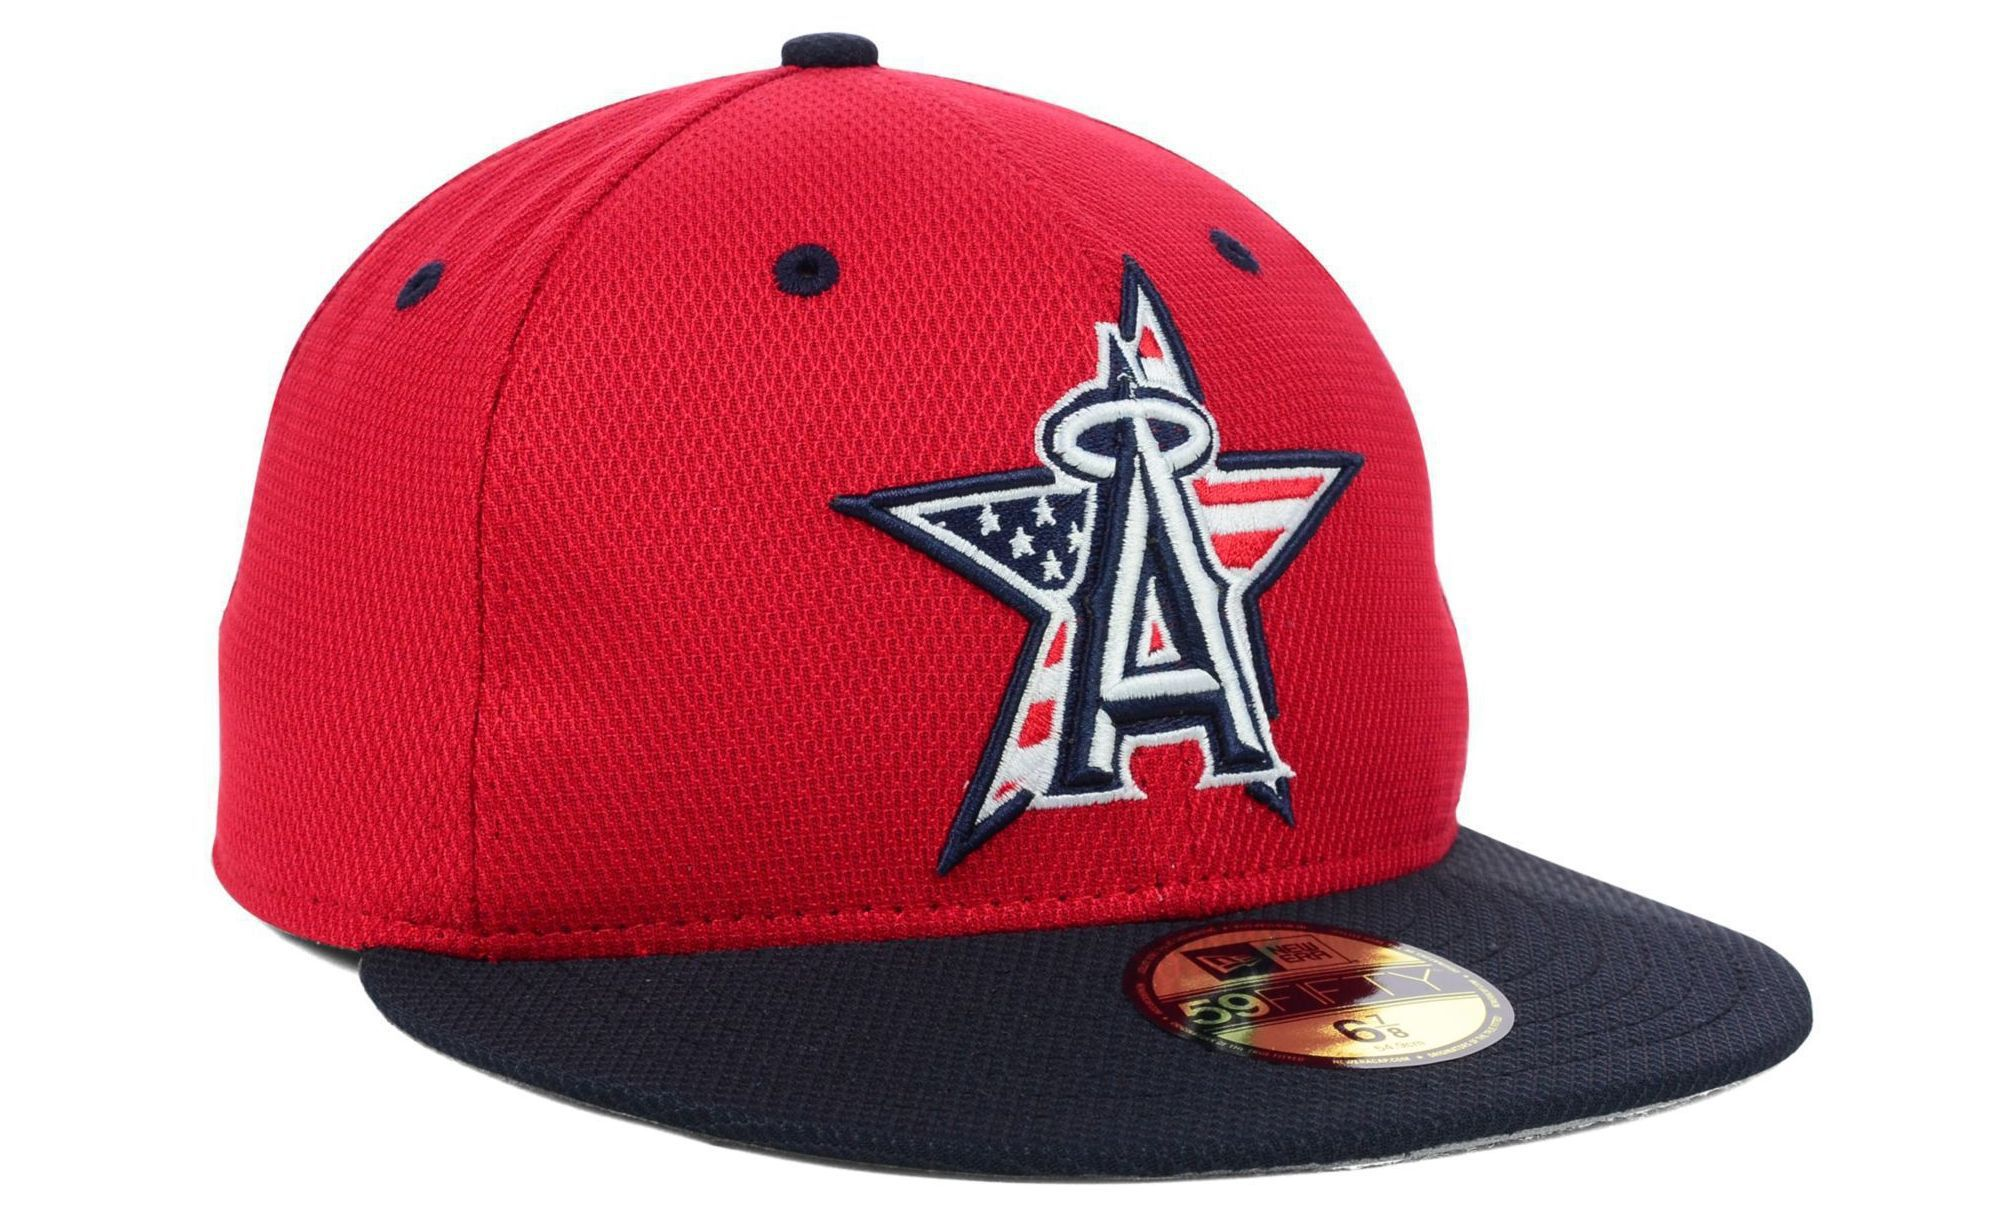 Anaheim Angels Widescreen